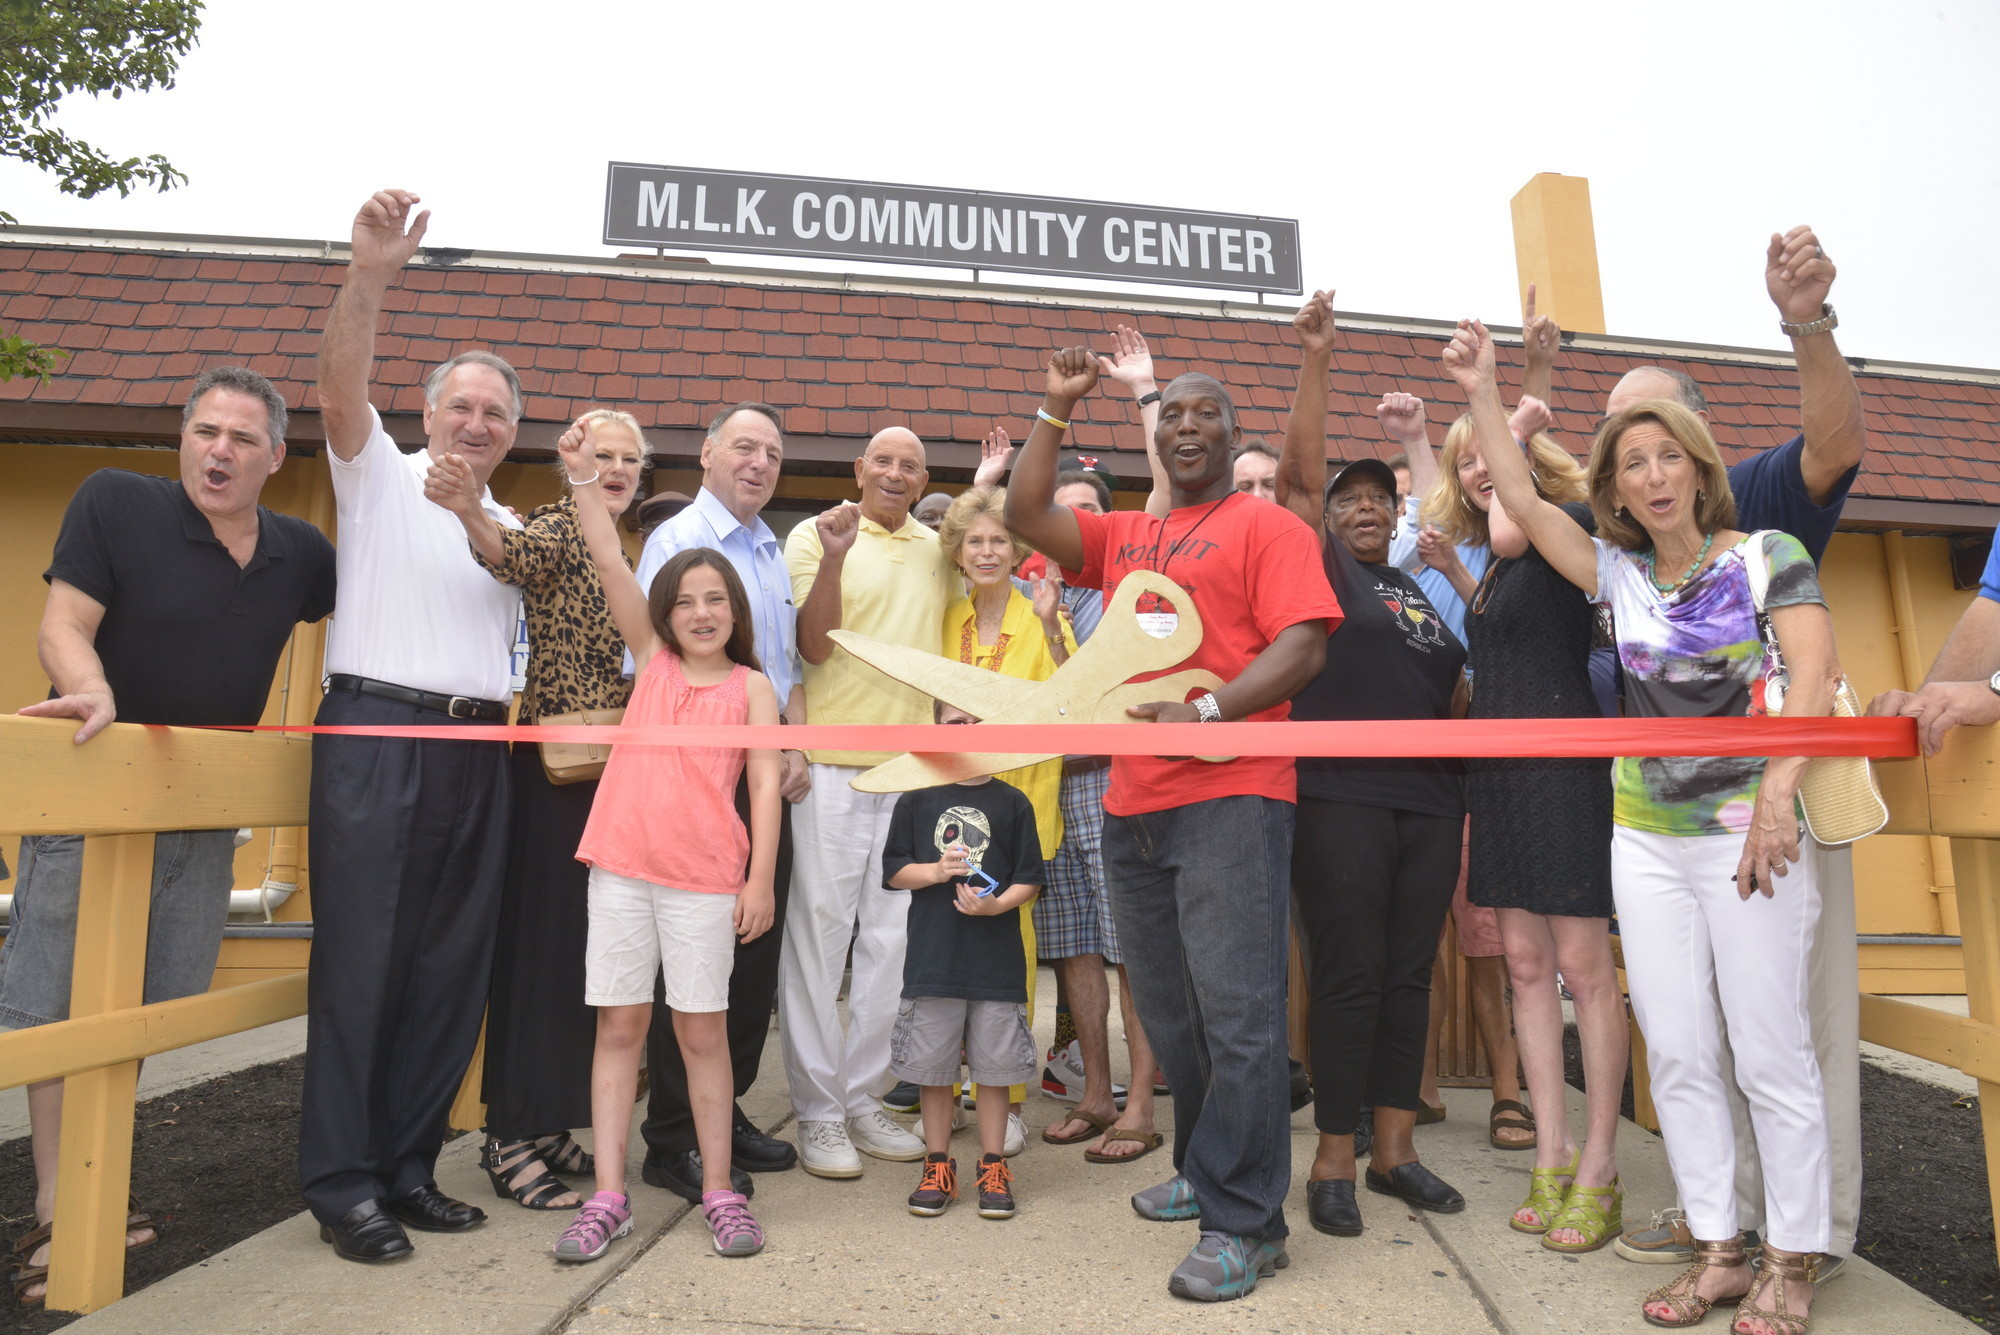 After the MLK Center on Riverside Boulevard was closed for renovations after Hurricane Sandy, a ribbon-cutting celebrated its reopening in 2013.